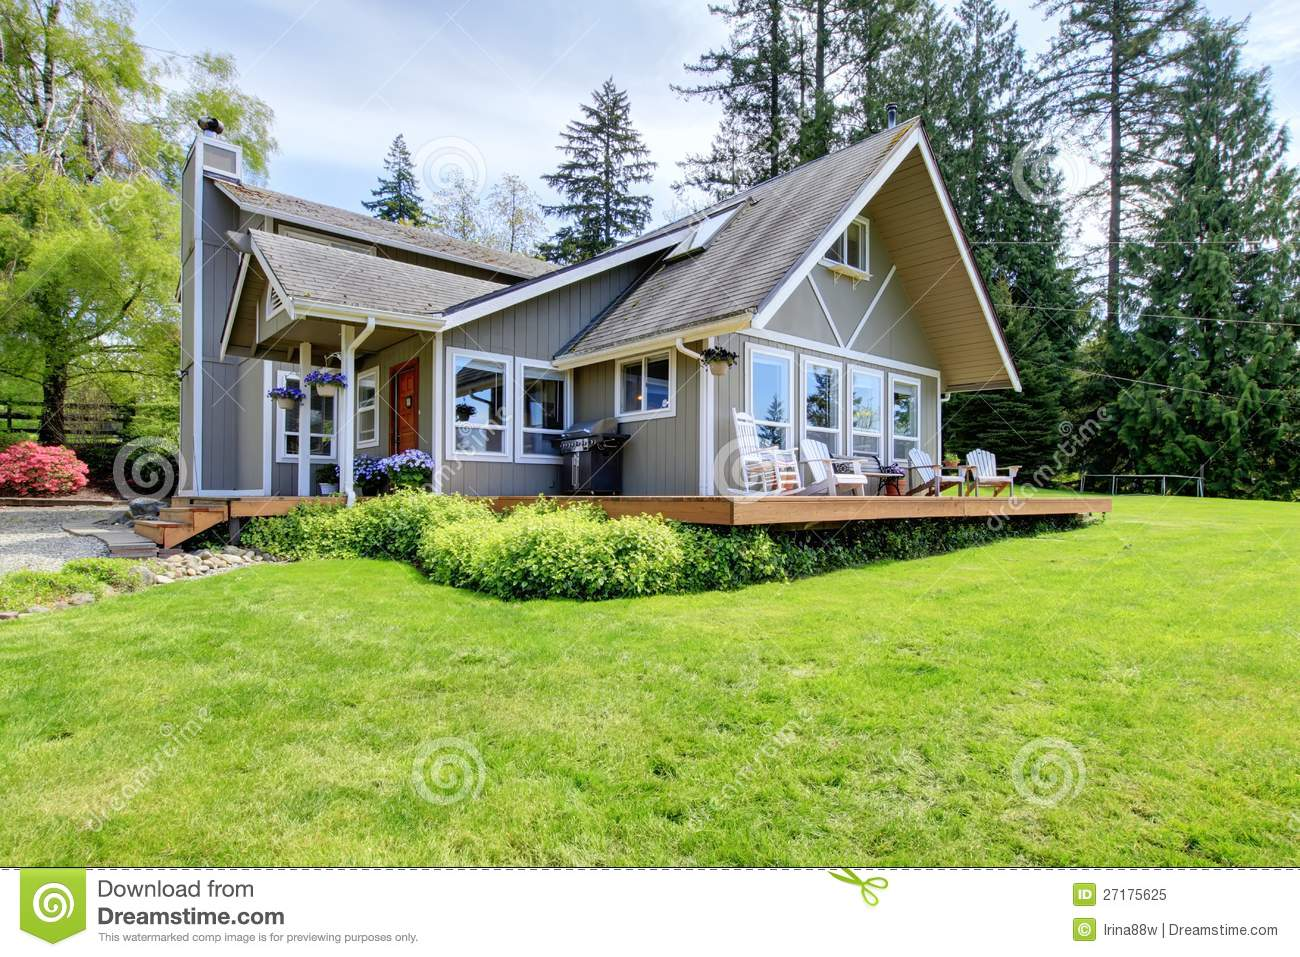 Modern American farm house with spring landscape.